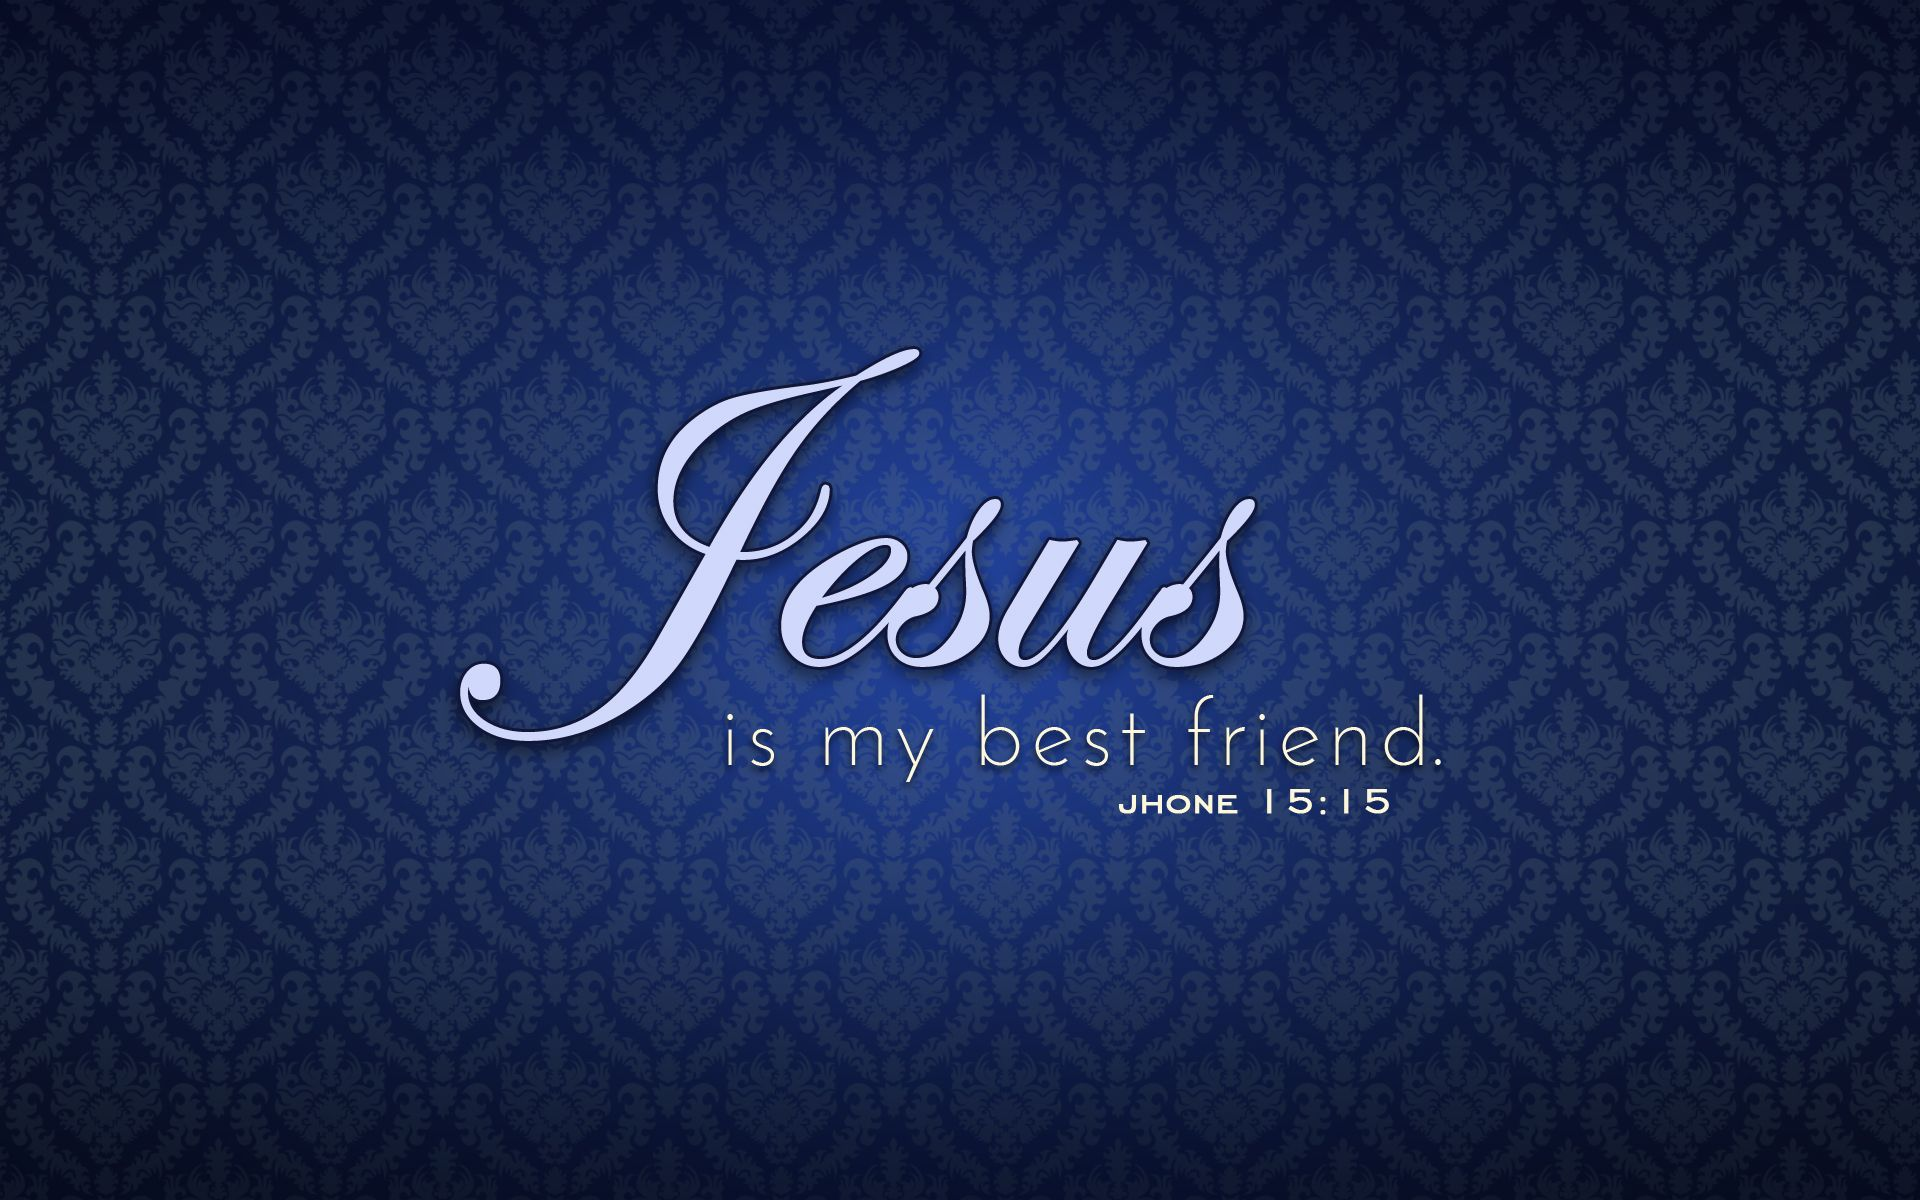 my best friend jesus My best friend jesus 75 likes find jesus and be saved from death and receive eternal life.